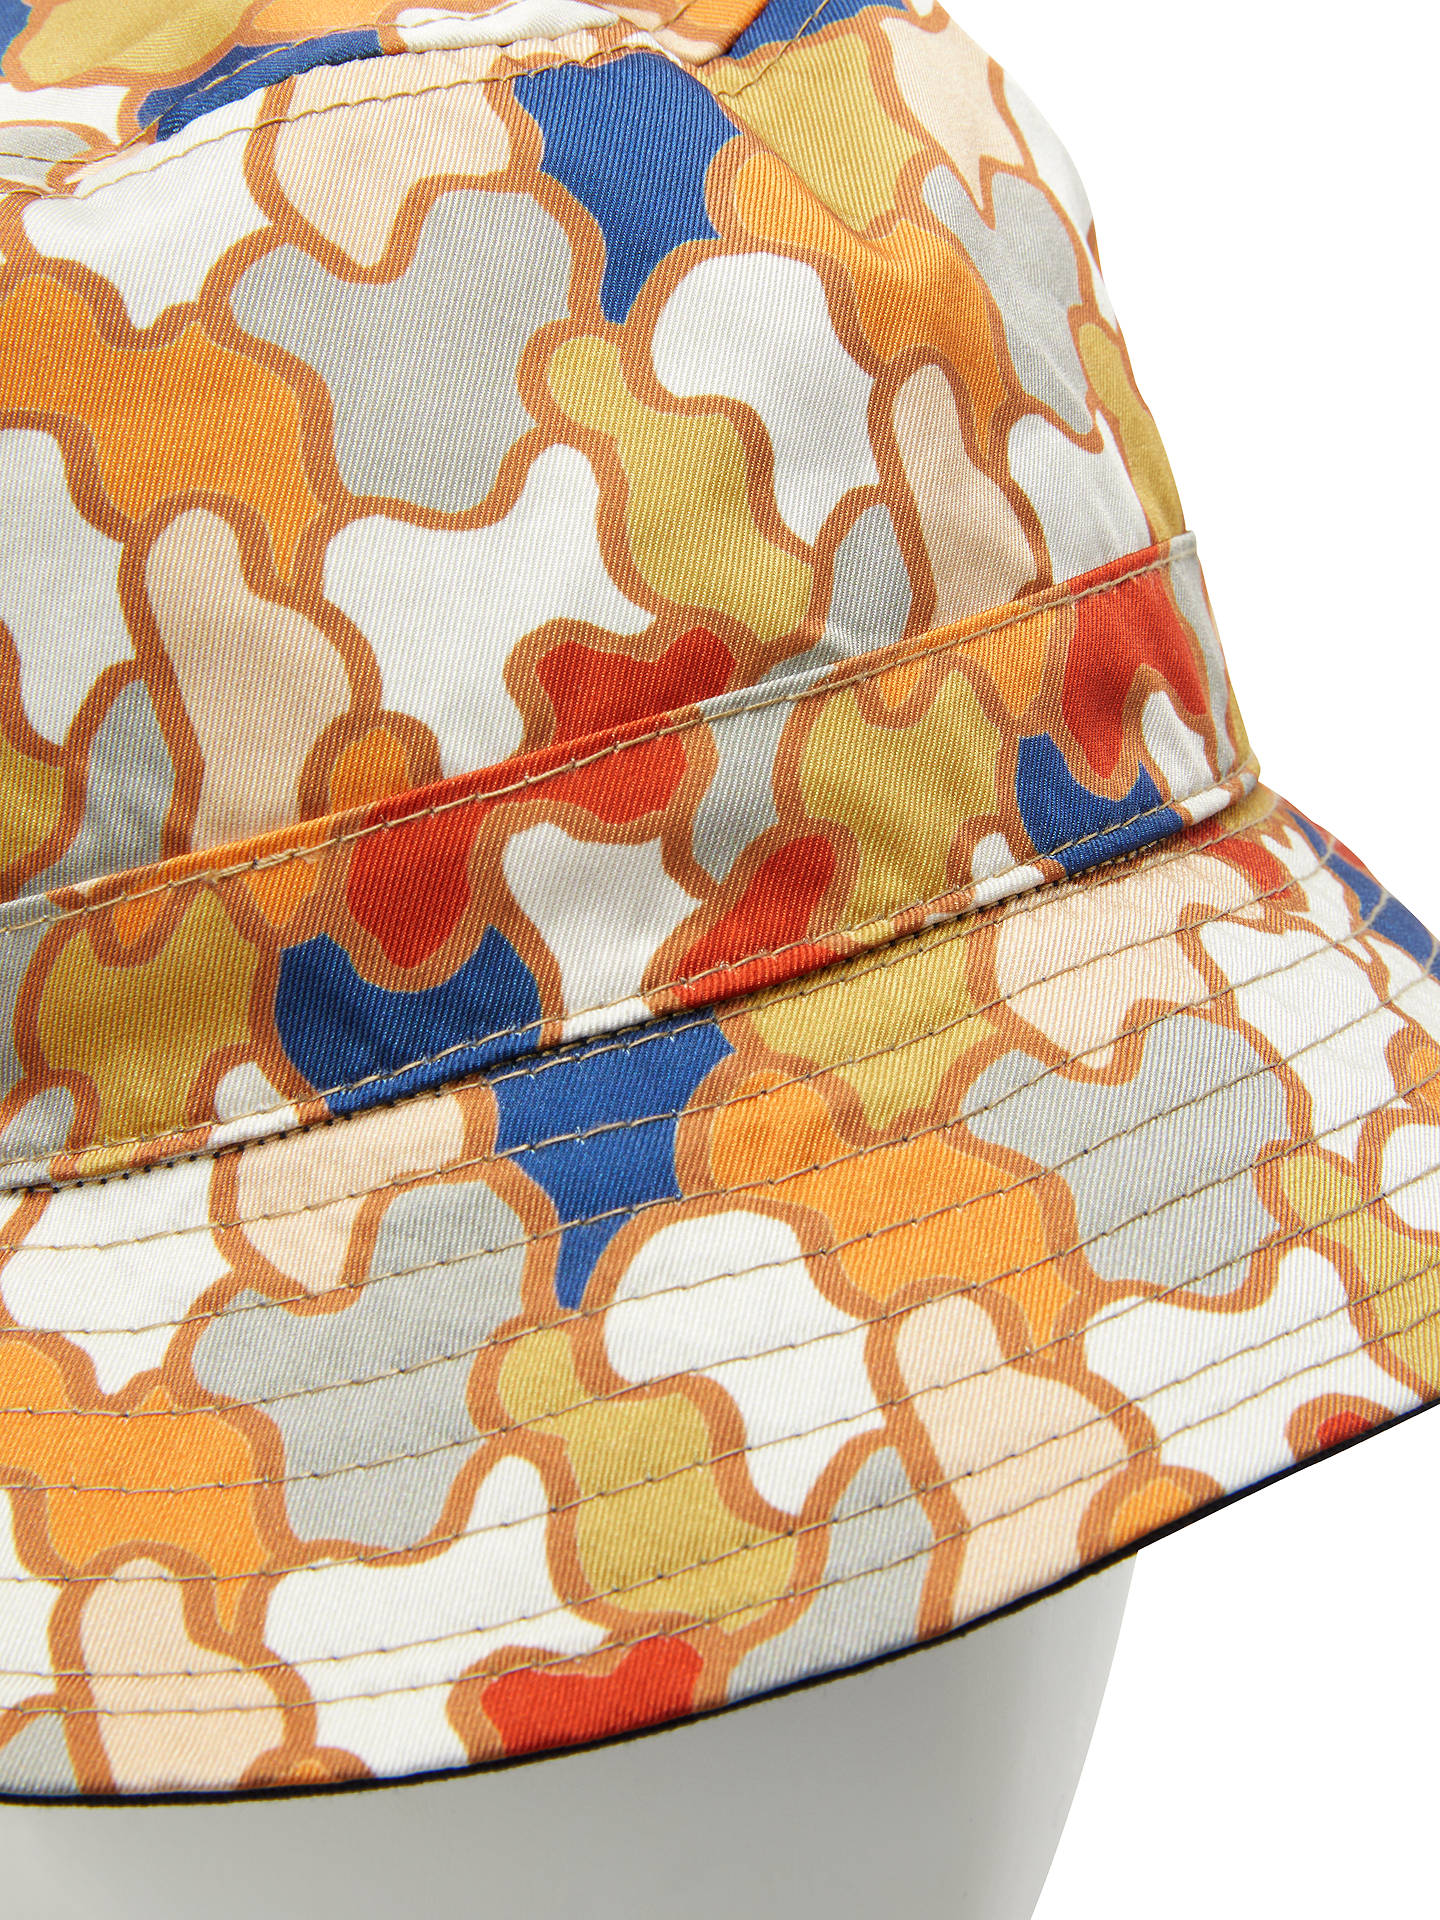 9e2a3535dde4b ... Buy Far Afield Reversible Bucket Hat, Jazz Camo Online at johnlewis.com